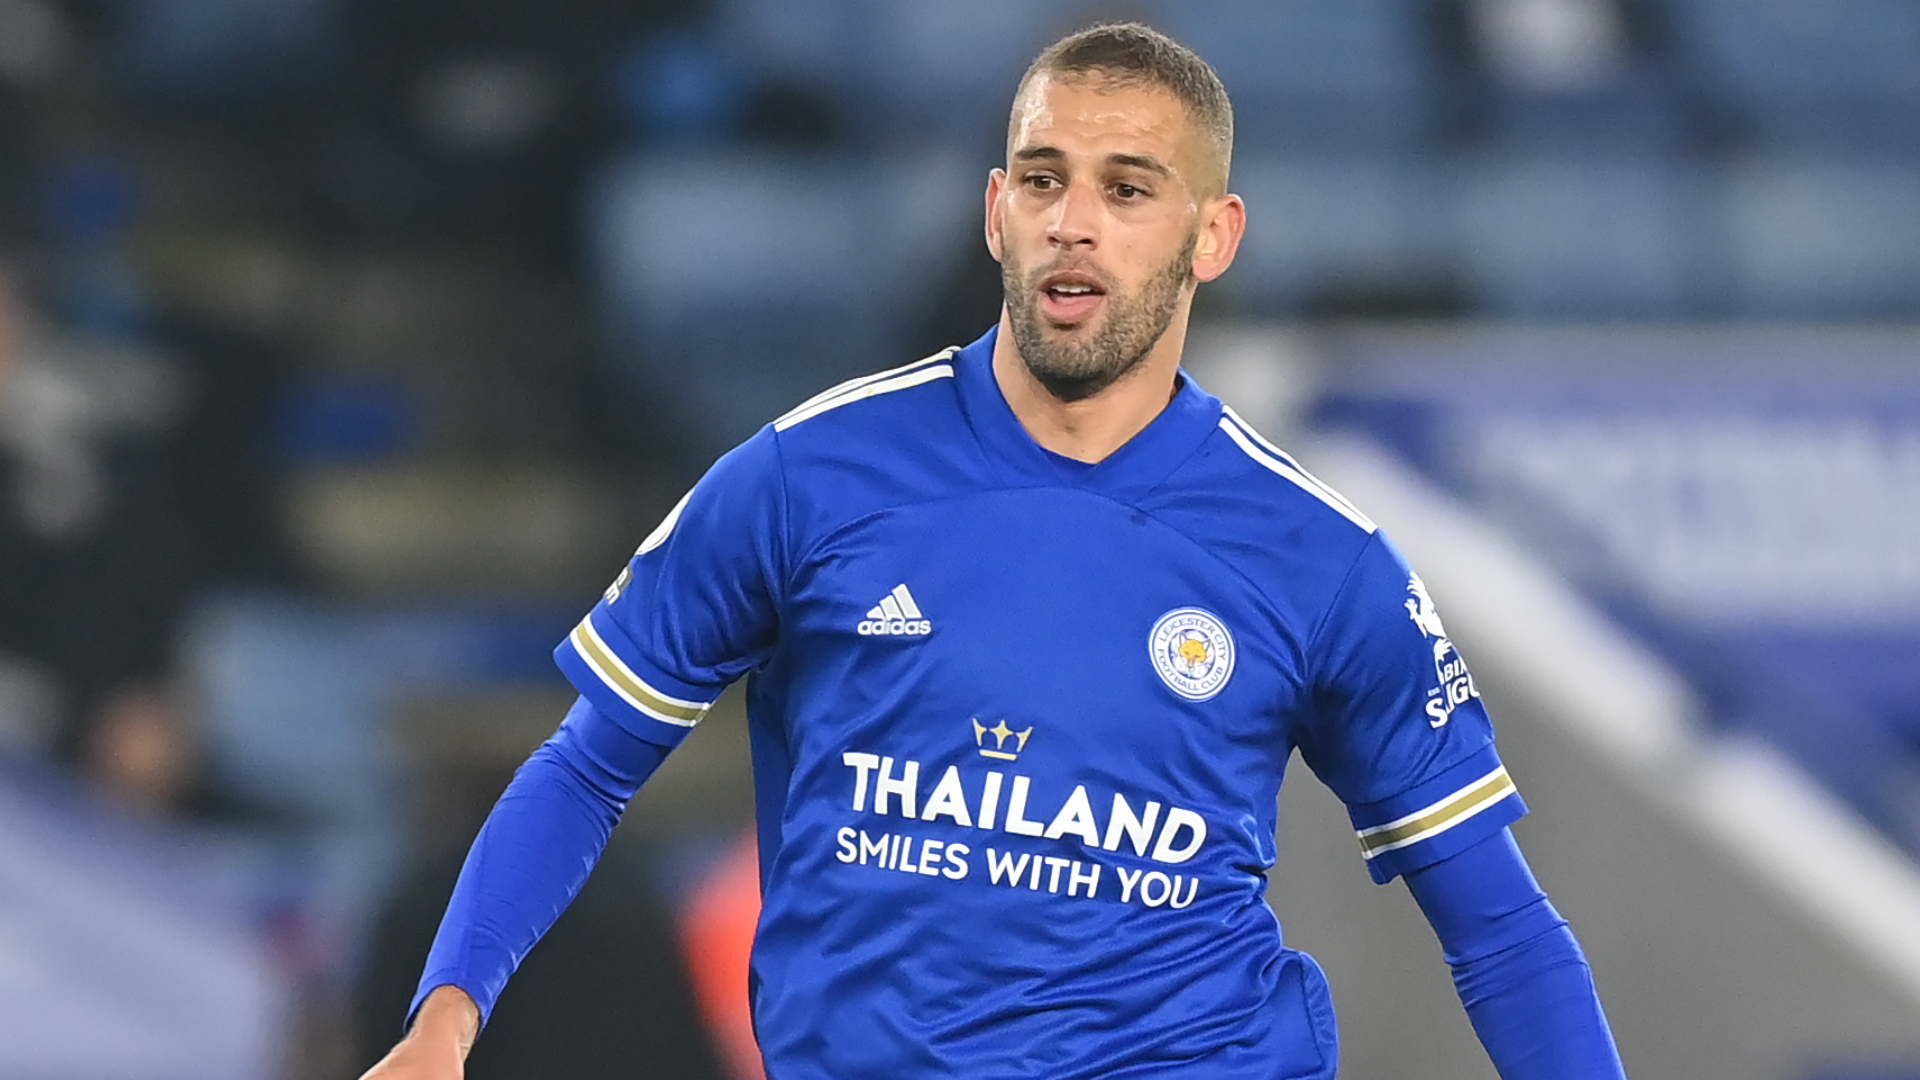 Islam Slimani: Lyon complete signing of Leicester City striker